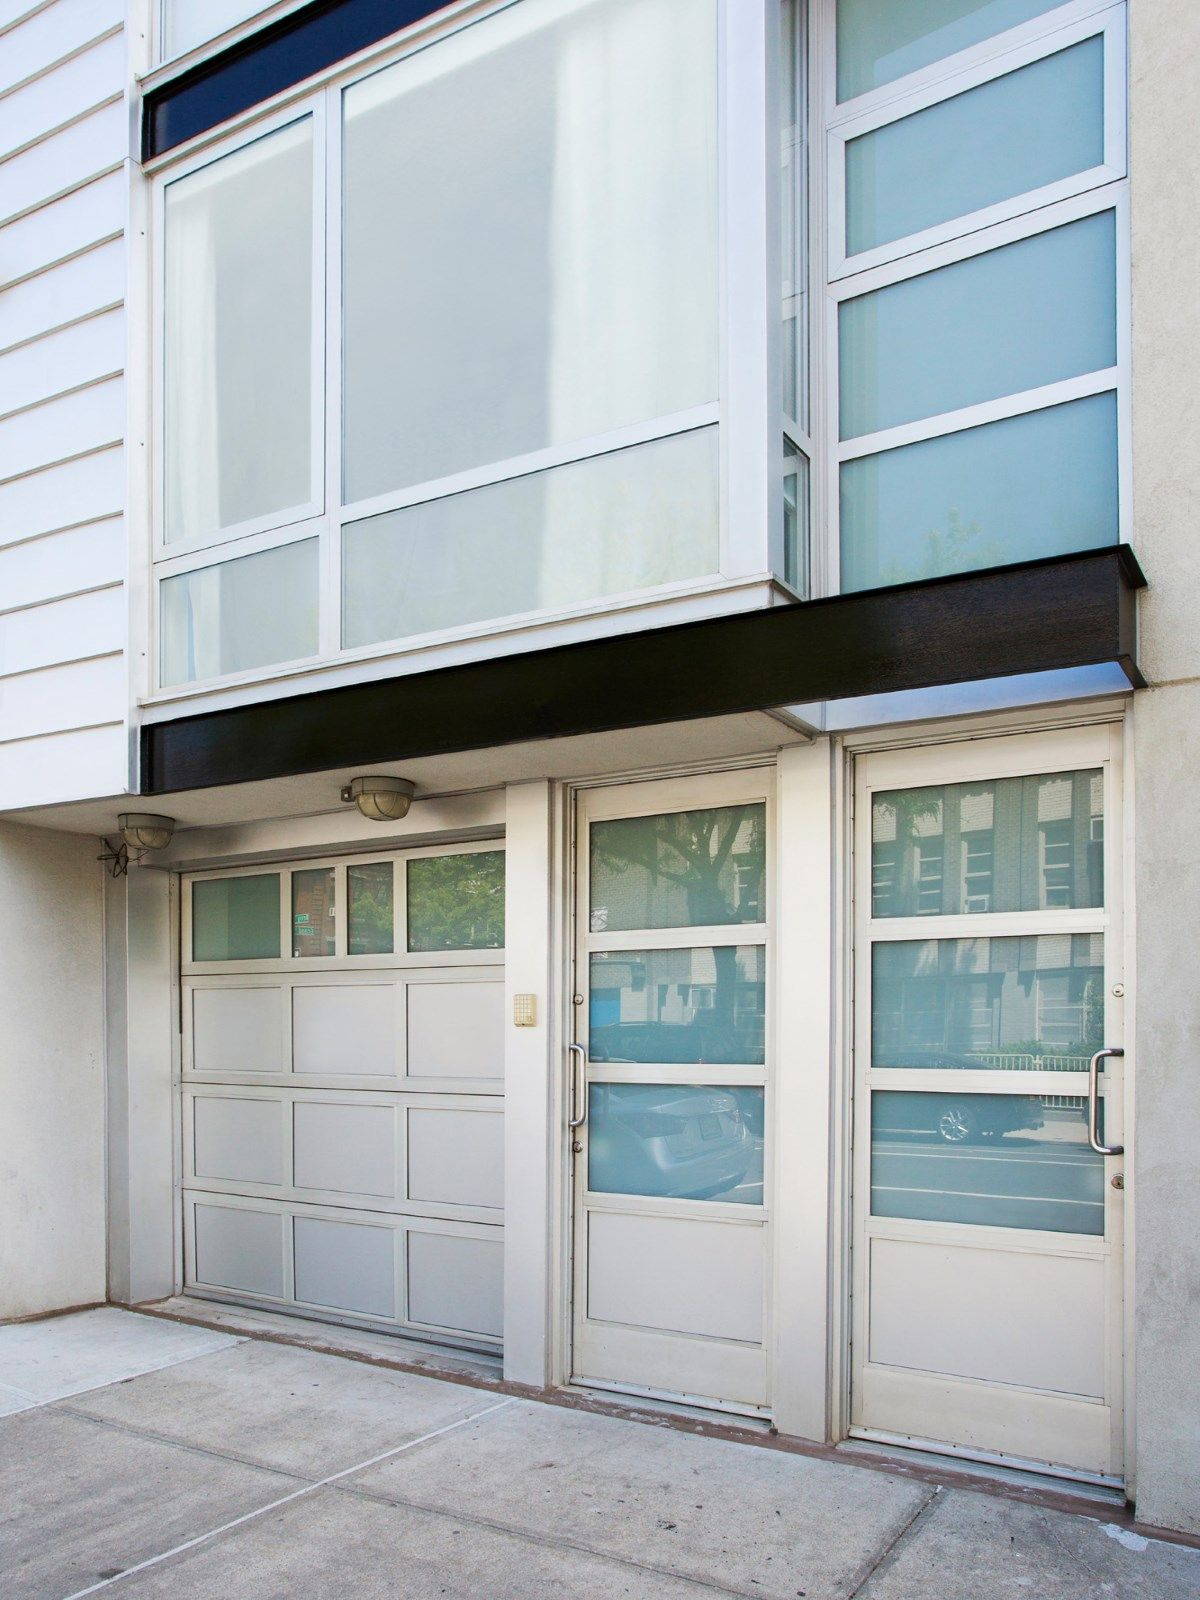 257 Berry Street, Williamsburg, townhouse, modern townhouse, art studio, garage, curb cut, cool listing, brooklyn townhouse for sale